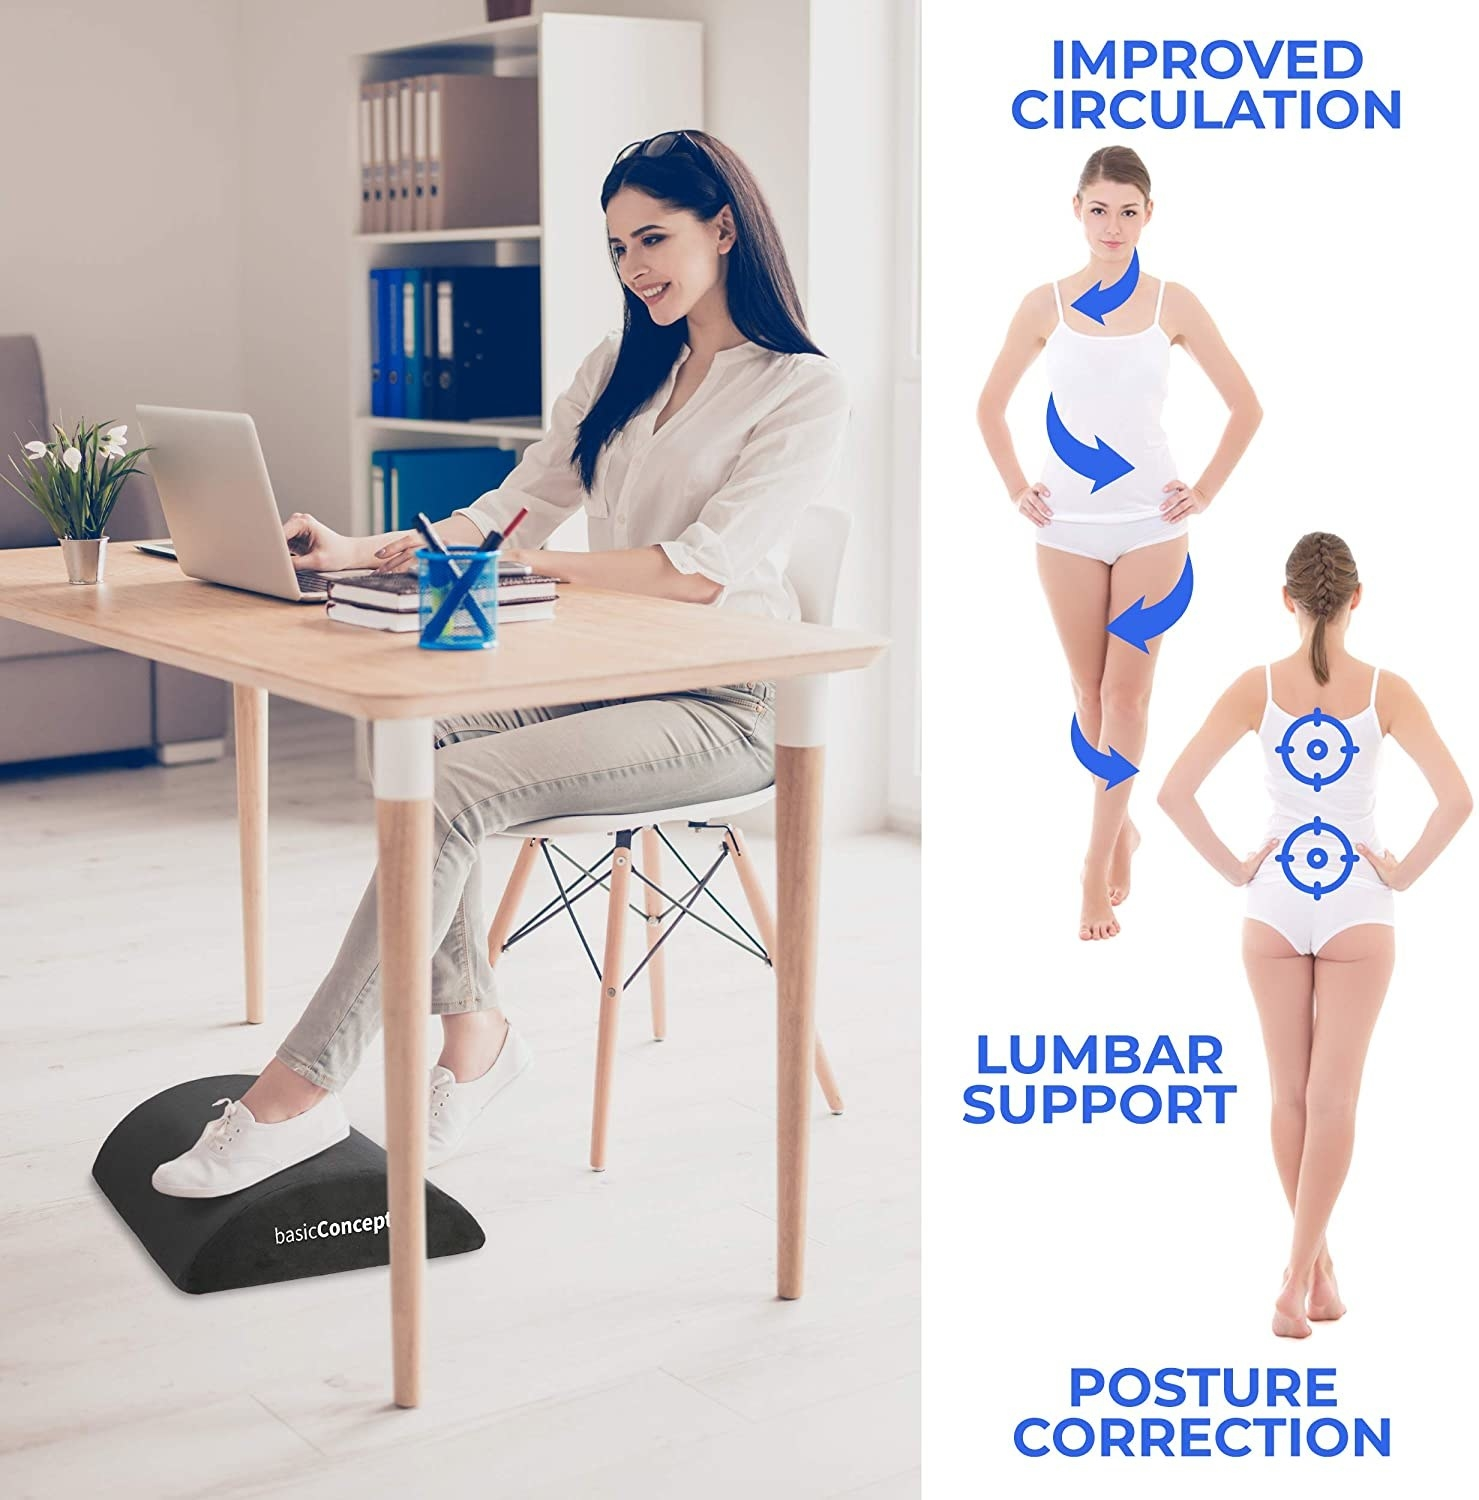 The foot support helps with lumbar support and posture correction